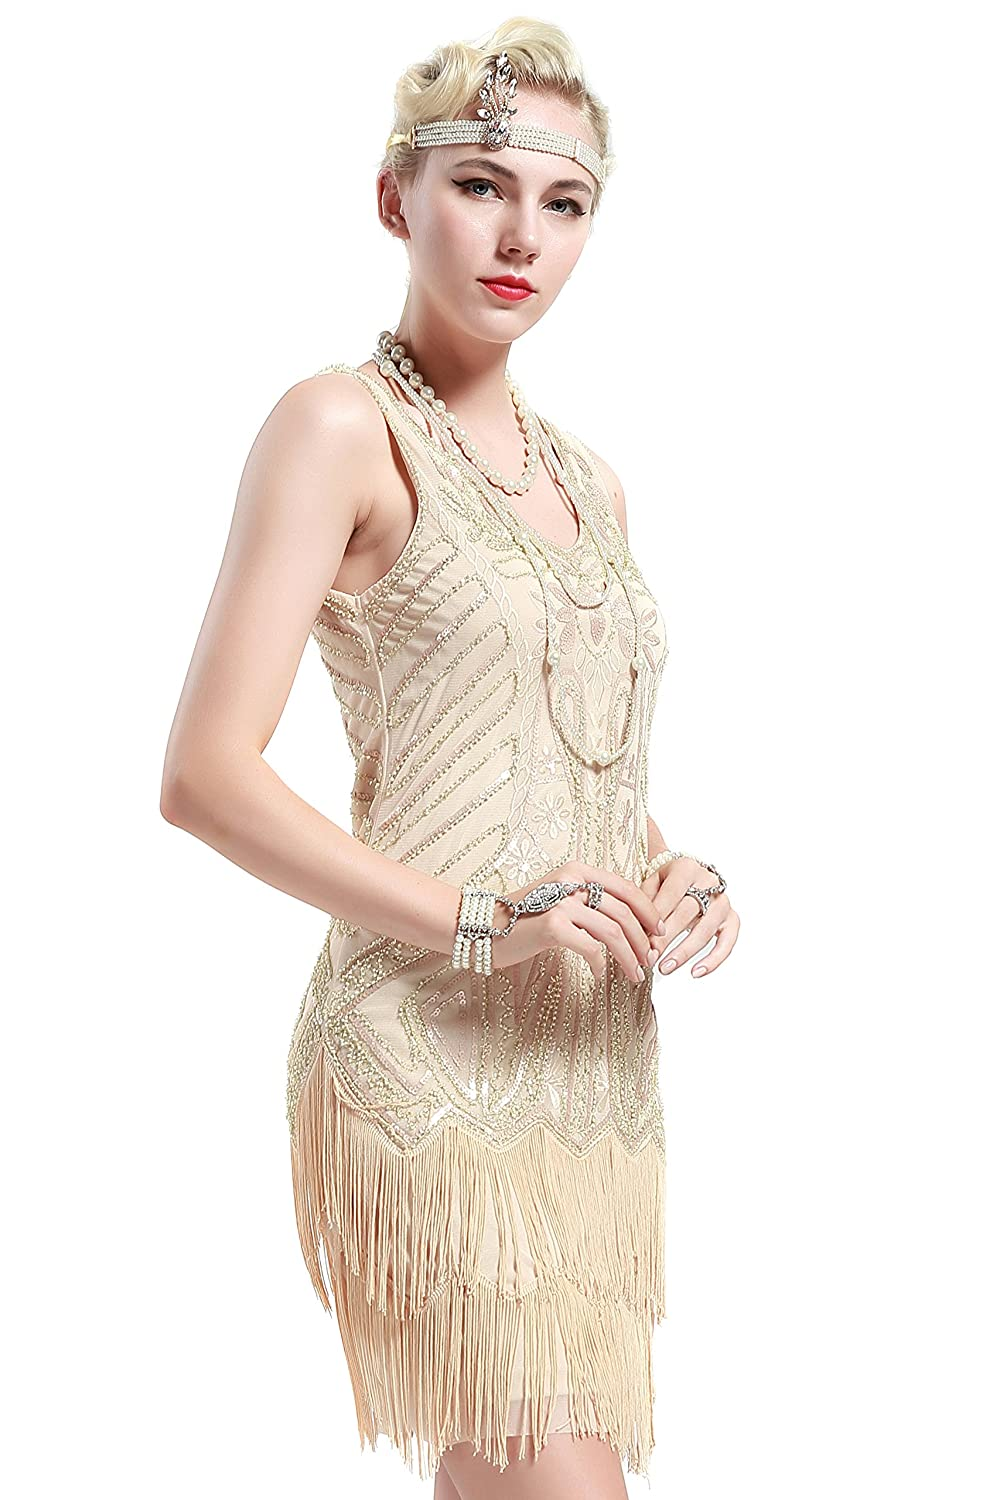 Downton Abbey Inspired Dresses BABEYOND Womens Flapper Dresses 1920s V Neck Beaded Fringed Great Gatsby Dress $28.99 AT vintagedancer.com